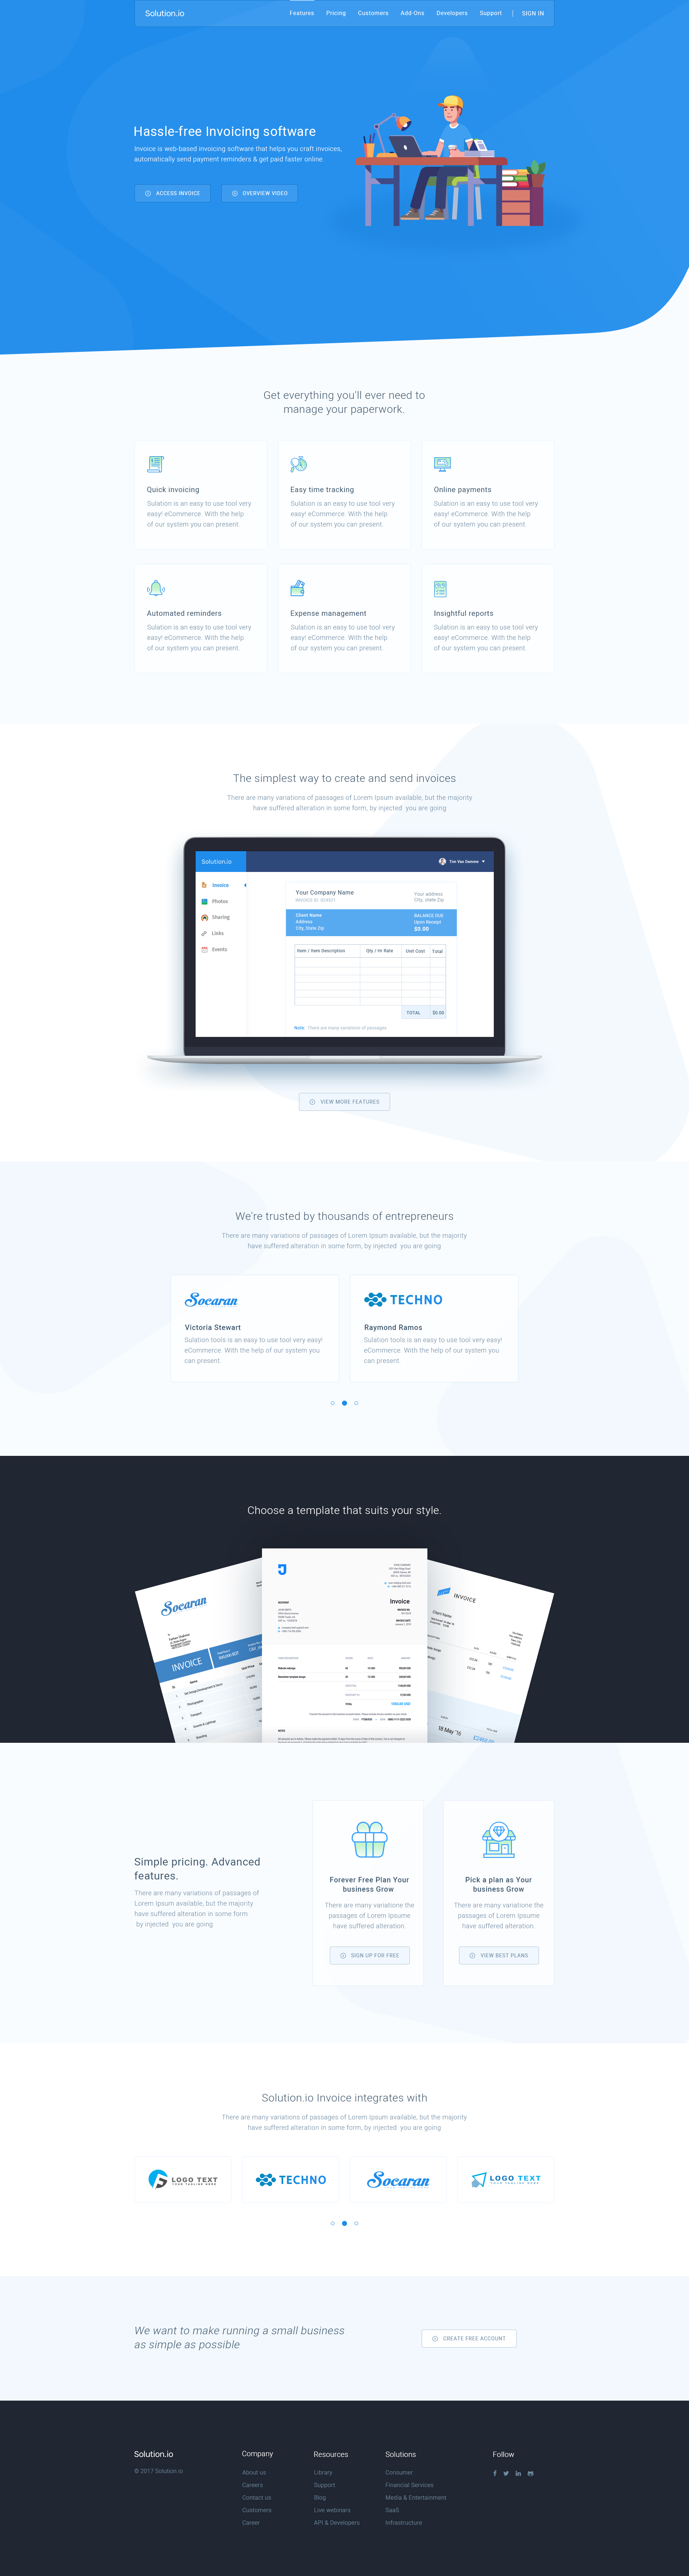 Spring - Software, App, Saas & Product Showcase Landing HTML5 Template